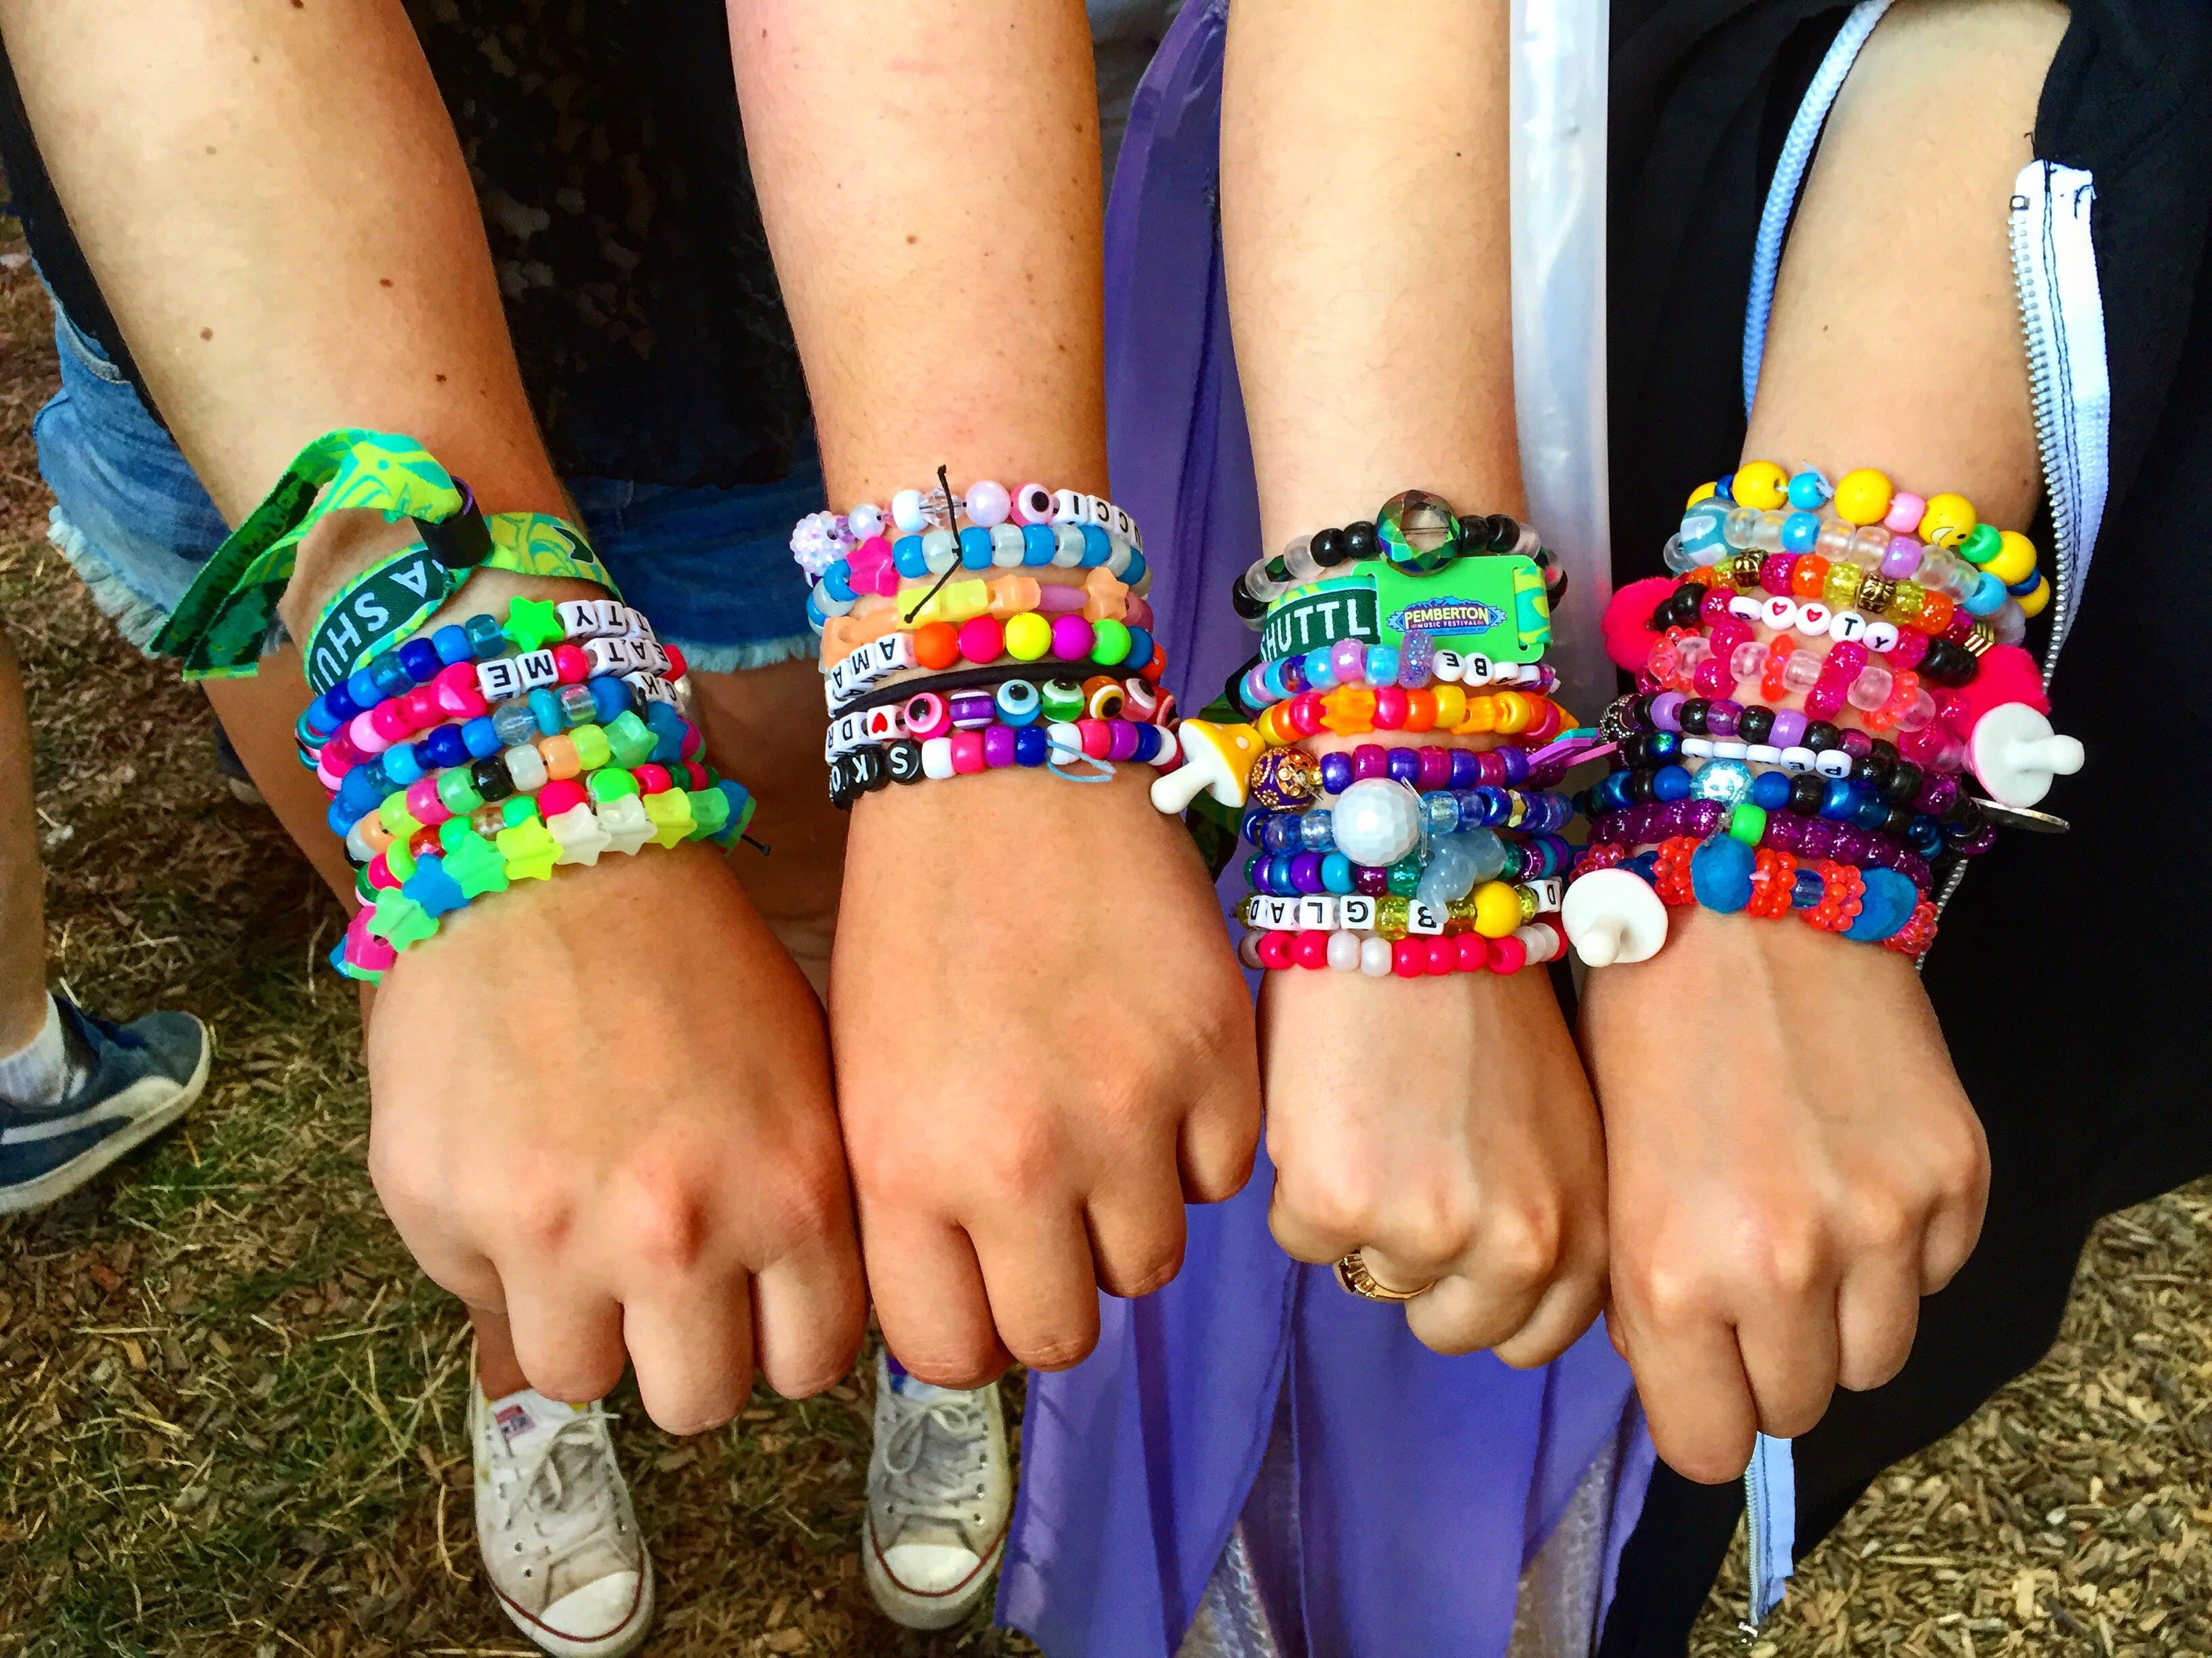 heyy bracelets pin his freak bracelet kandi rave ravers and music festival hers